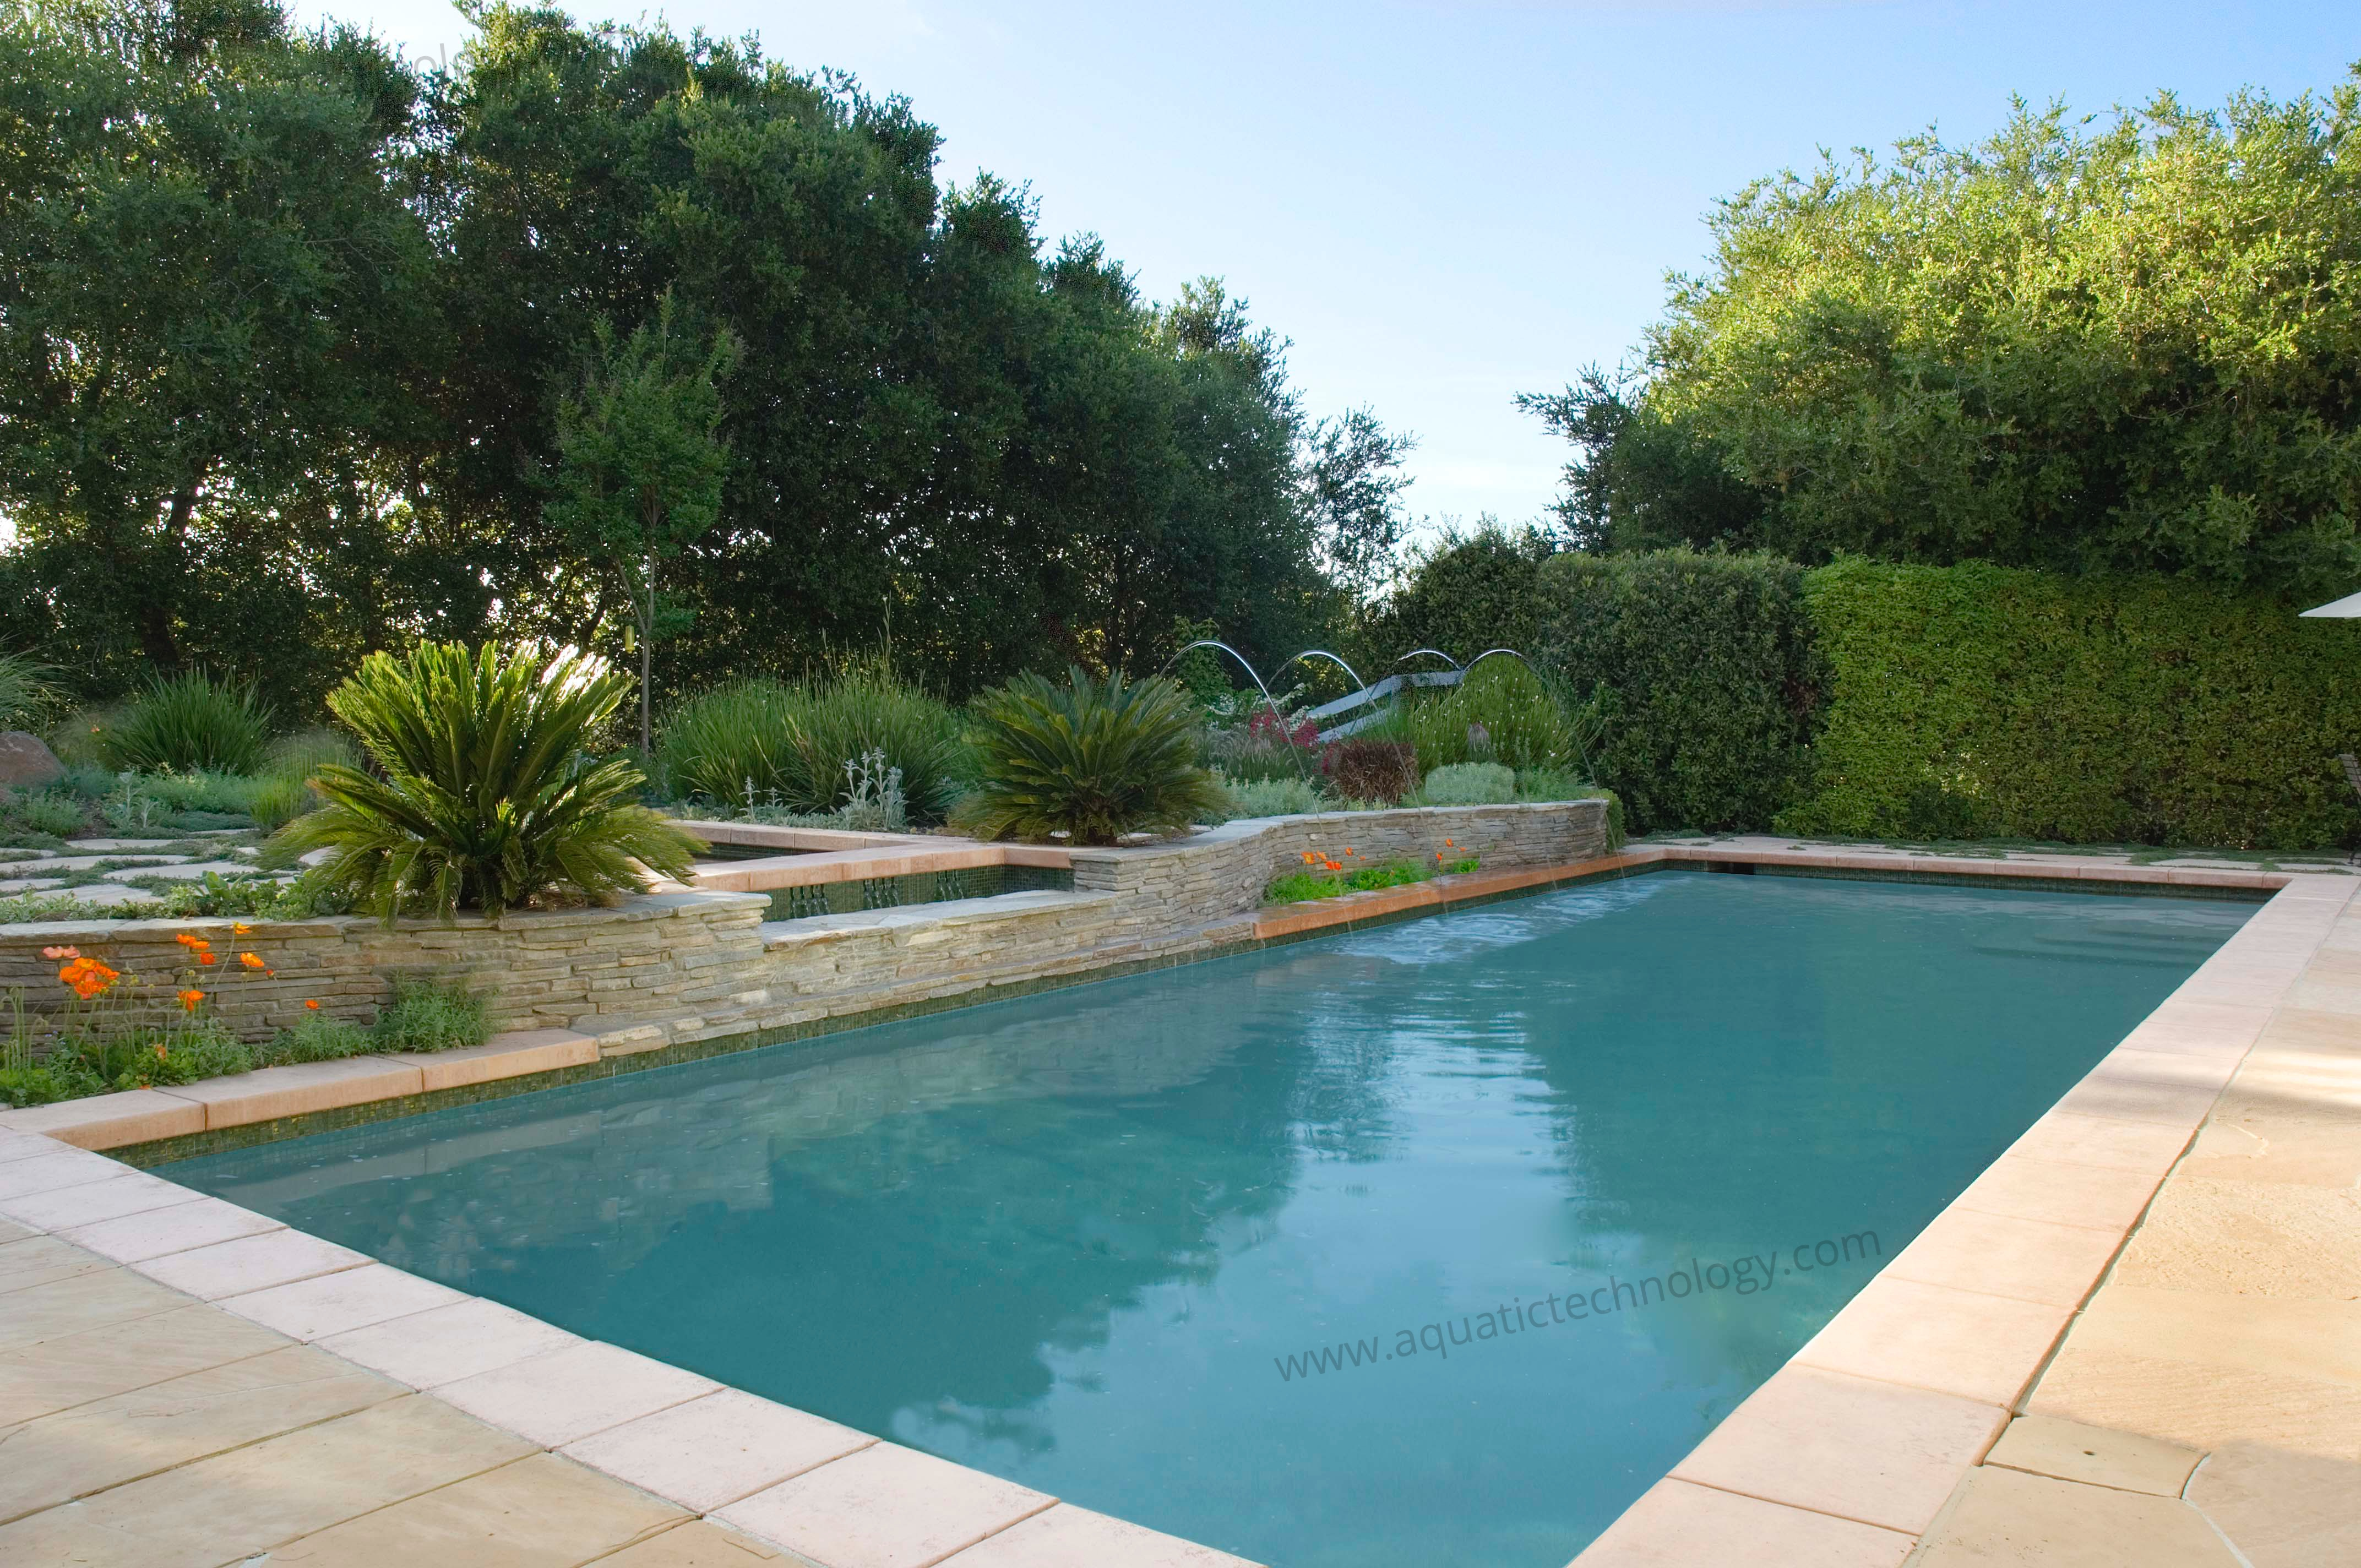 Serpentine ledger stone walls glass tile pool flagstone patio